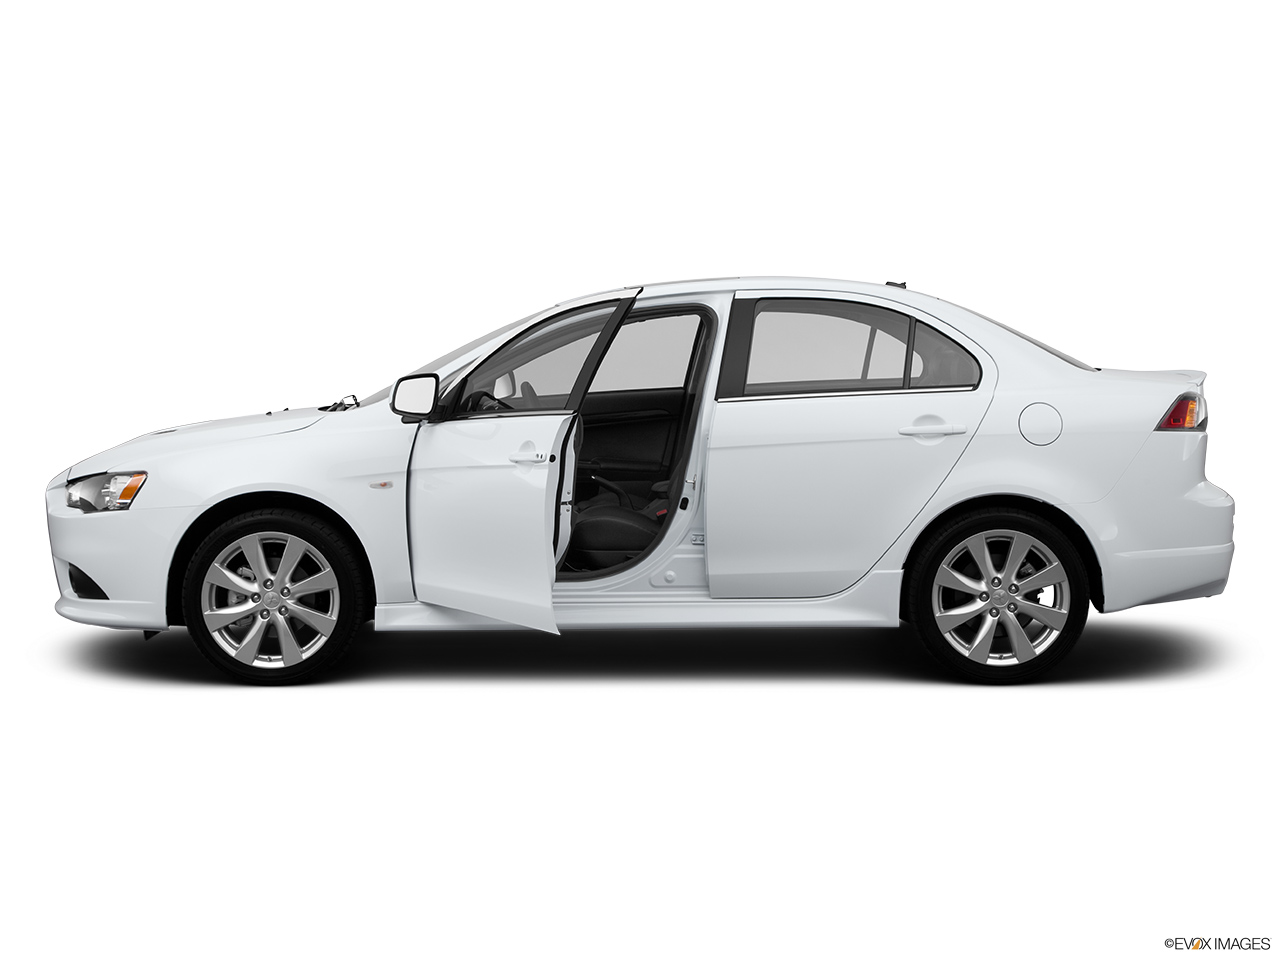 2014 Mitsubishi Lancer Sedan Manual Gt Fwd Driver S Side